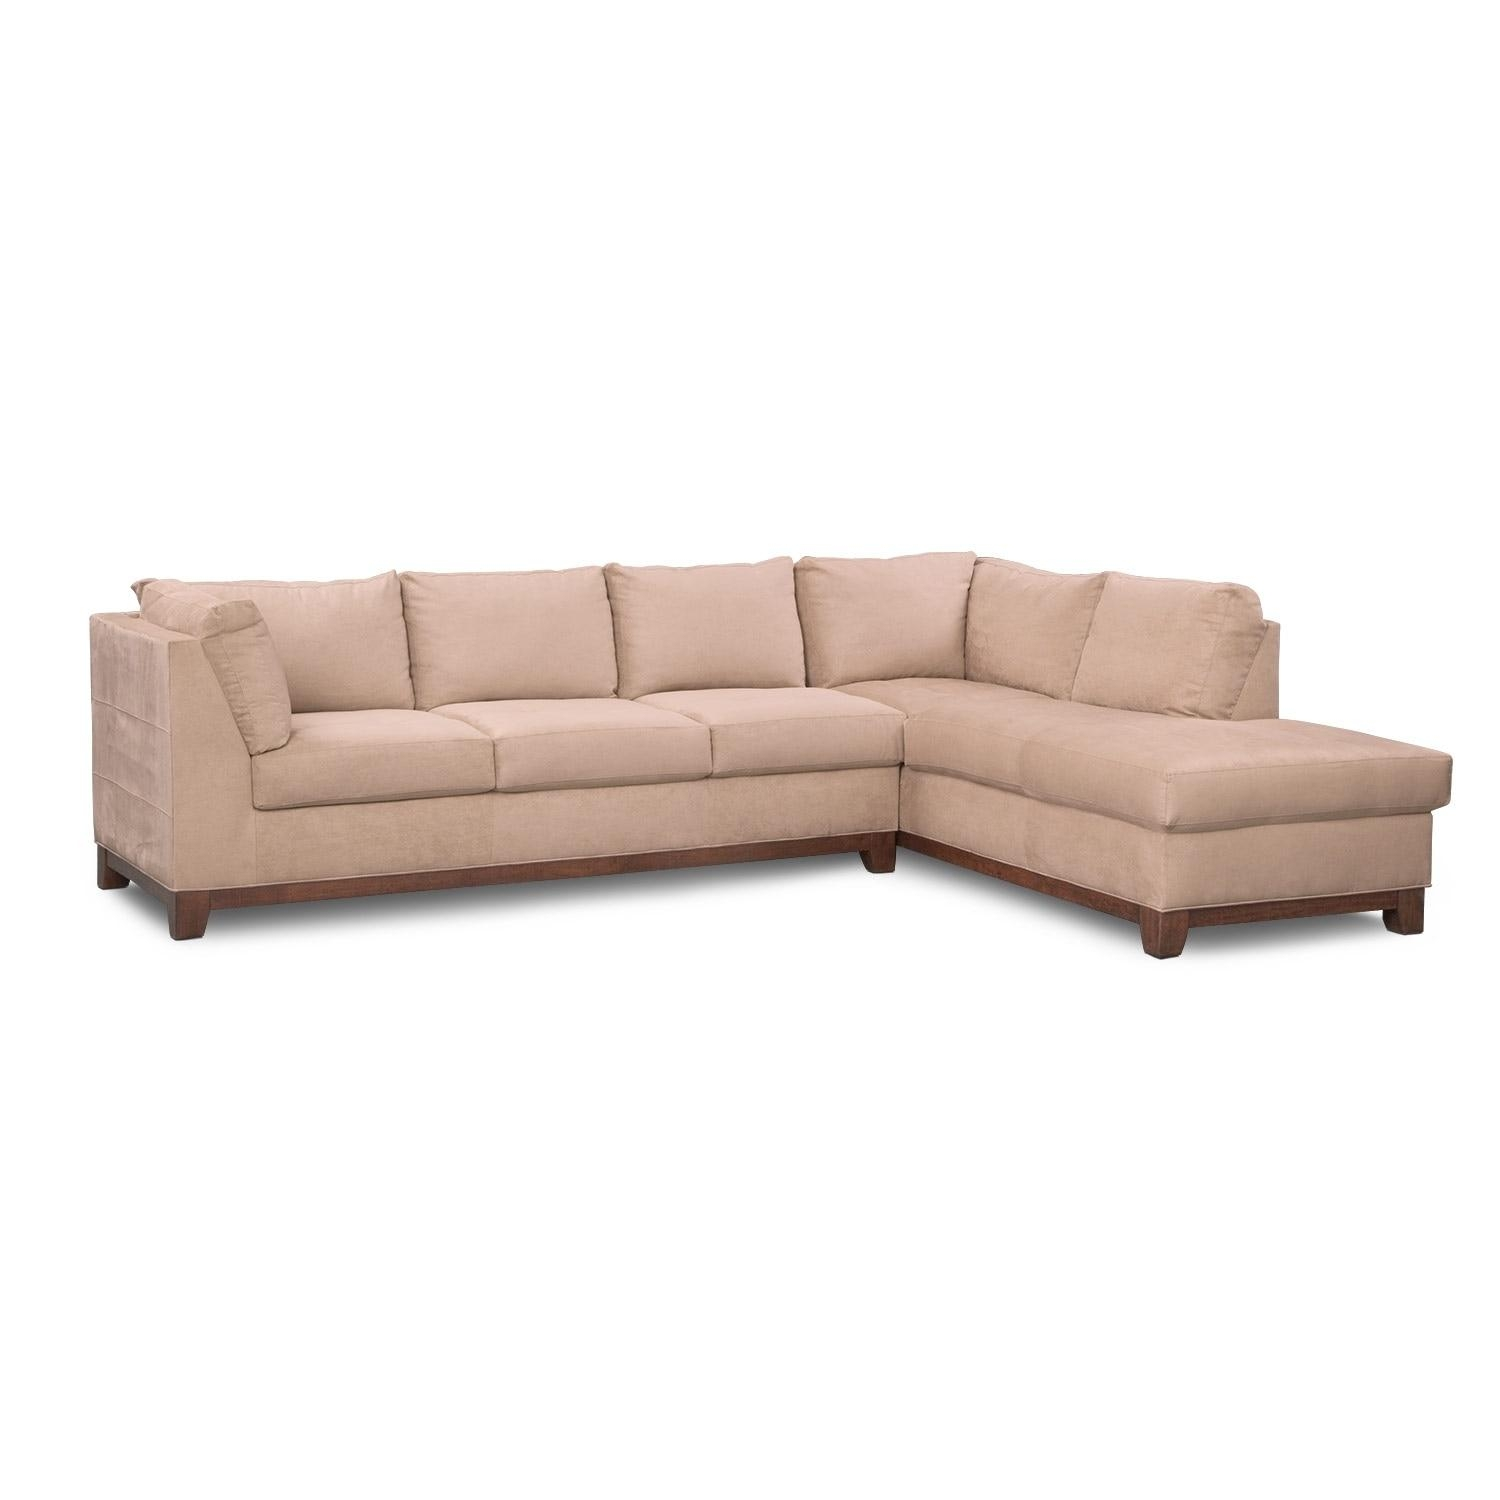 Soho 2 Piece Sectional With Right Facing Chaise – Cobblestone Regarding Sectional With 2 Chaises (Image 18 of 20)